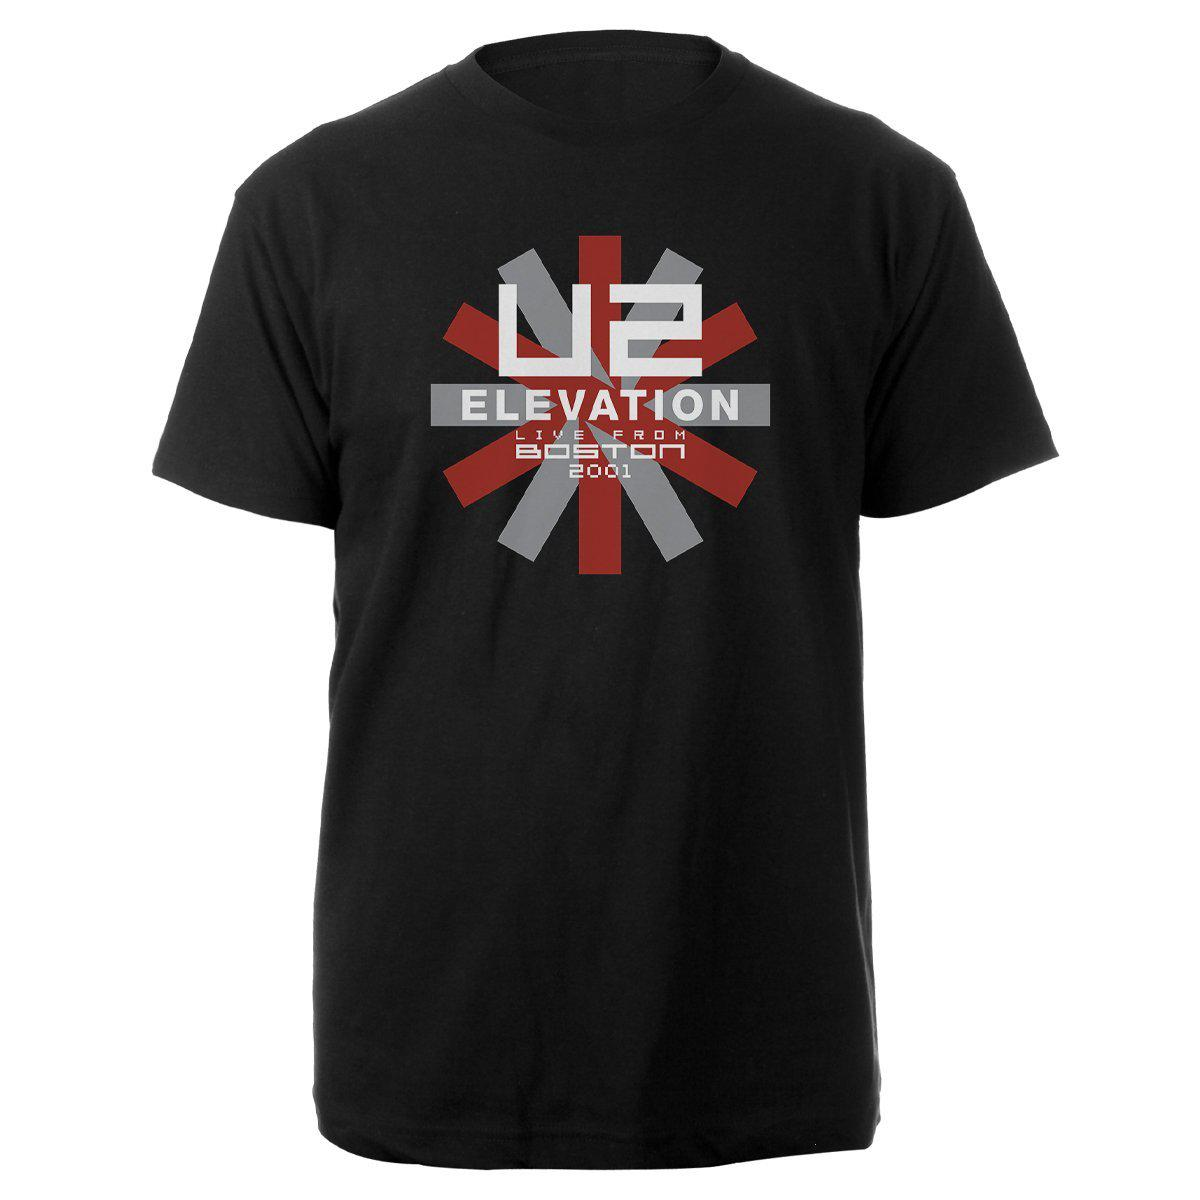 Elevation Live From Boston Black Tee